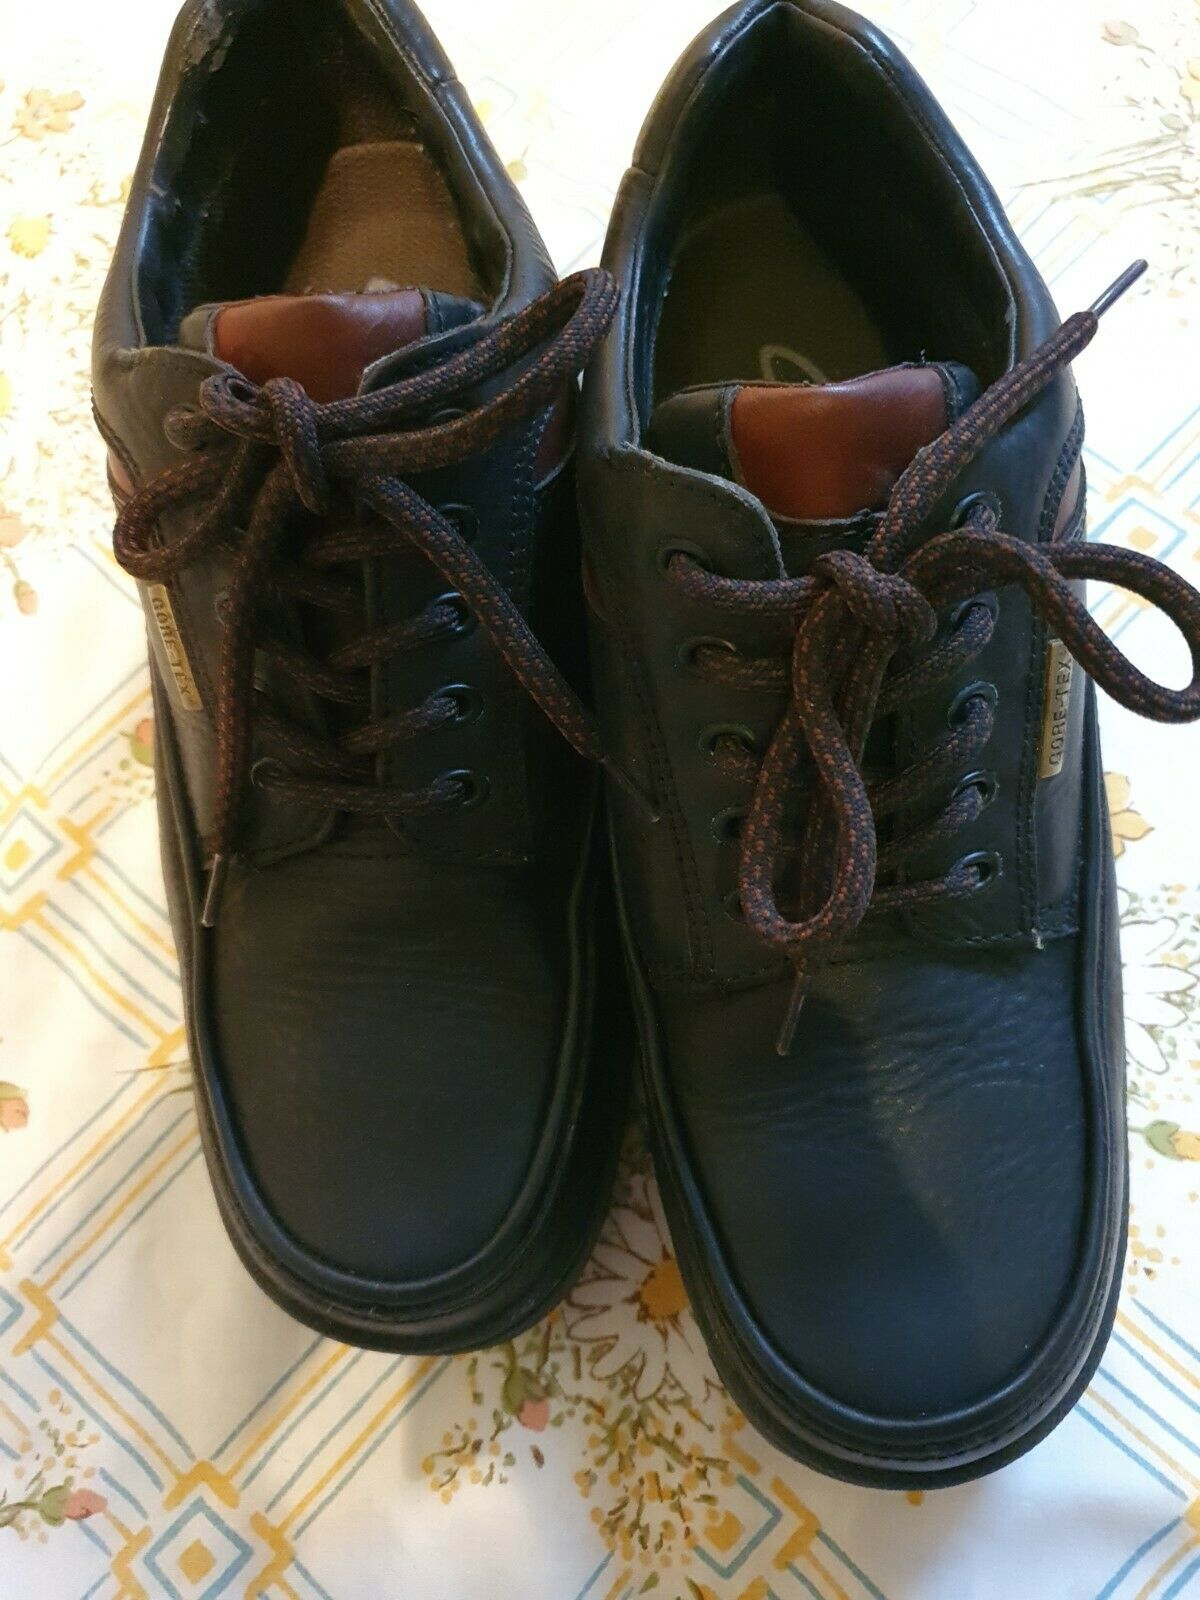 CLARKS ACTIVE AIR MENS SHOES SIZE UK 7.5 IDEAL FOR WINTER